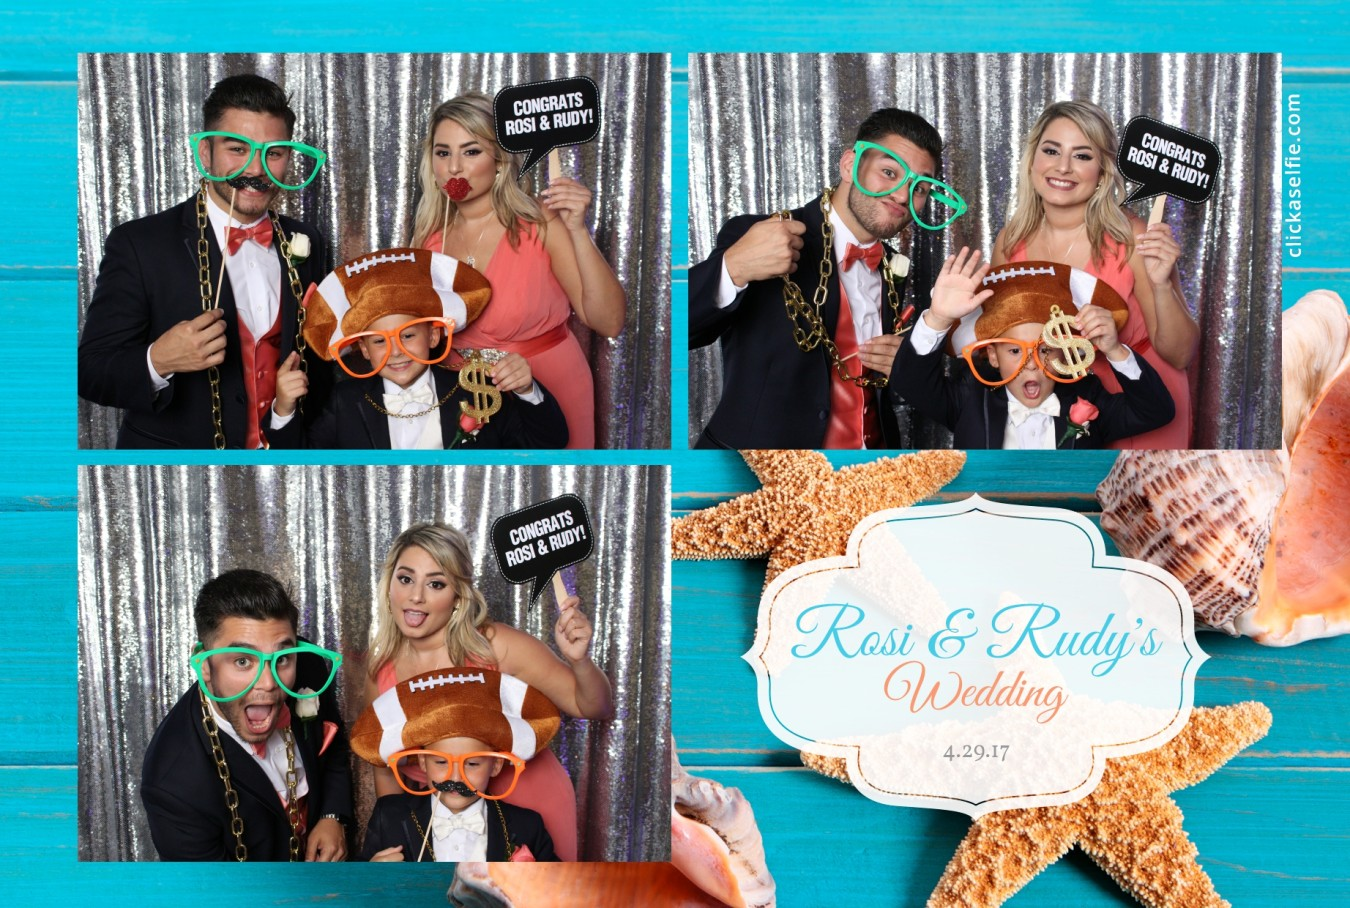 photo booth pictures, photo booth hire, photobooth fun, photo booth near me, wedding entertainment ideas, photo booth rental near me